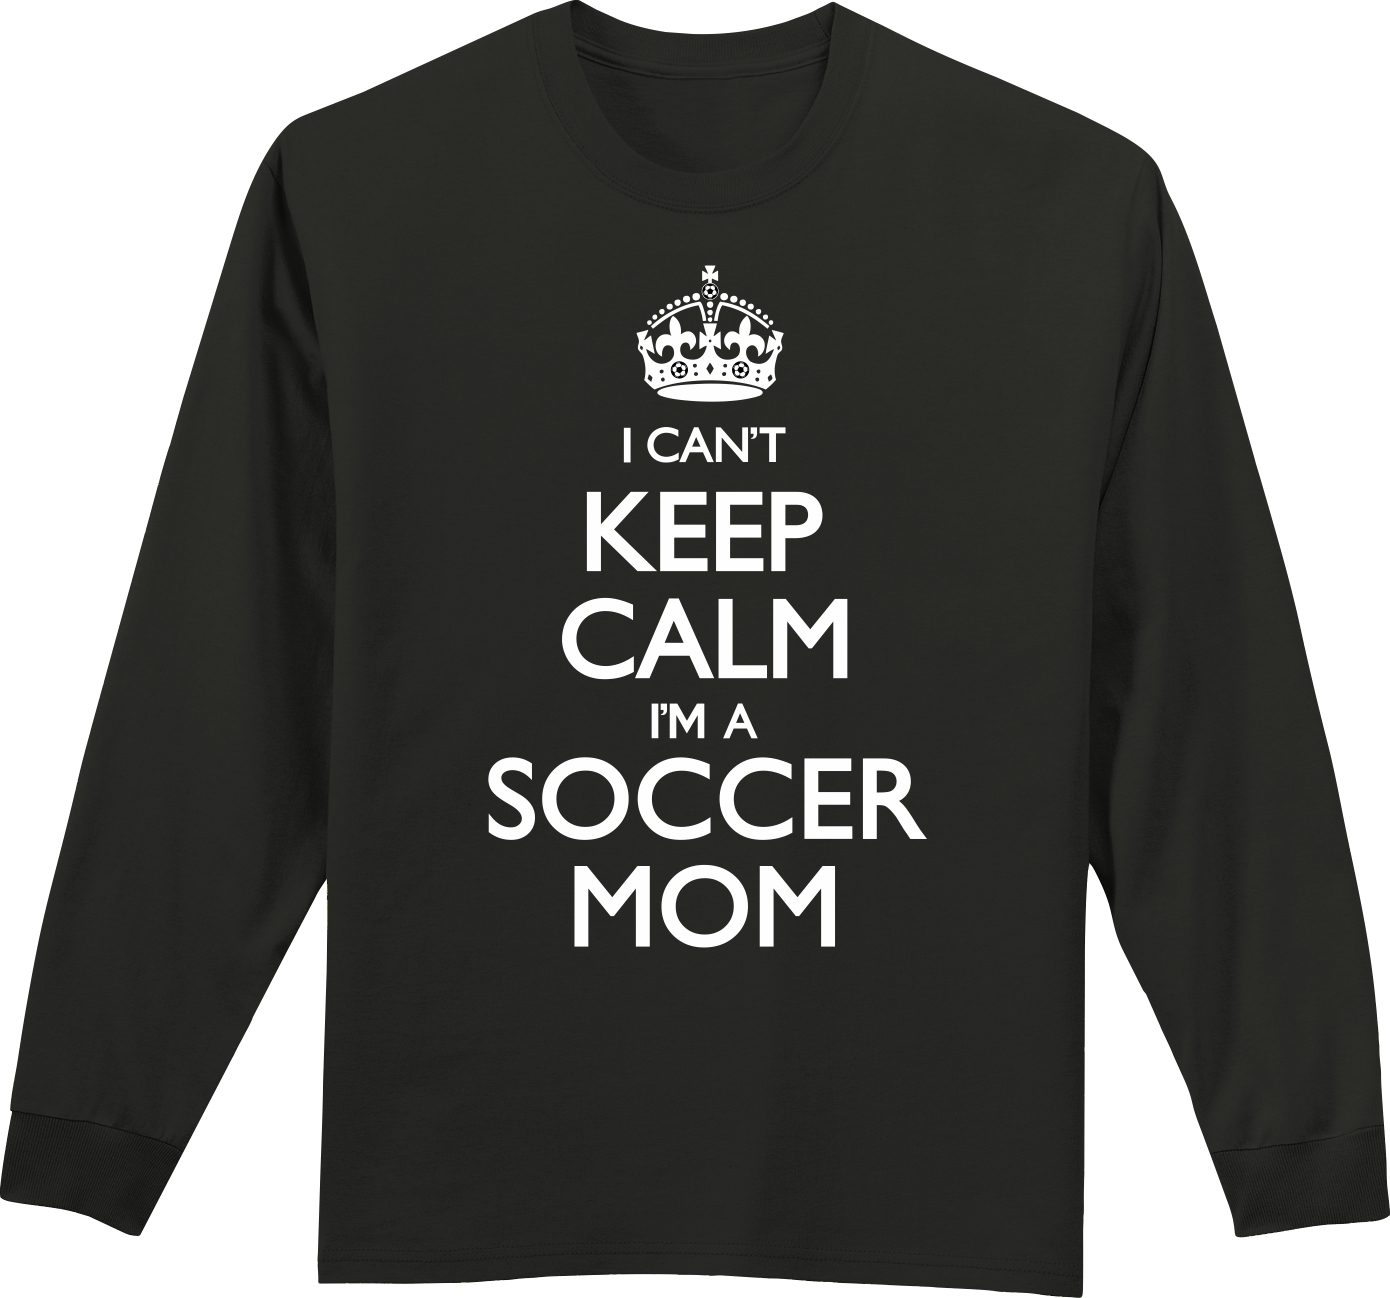 Long Sleeve Soccer T-Shirt: Can't Keep Calm Soccer Mom-Adult Small